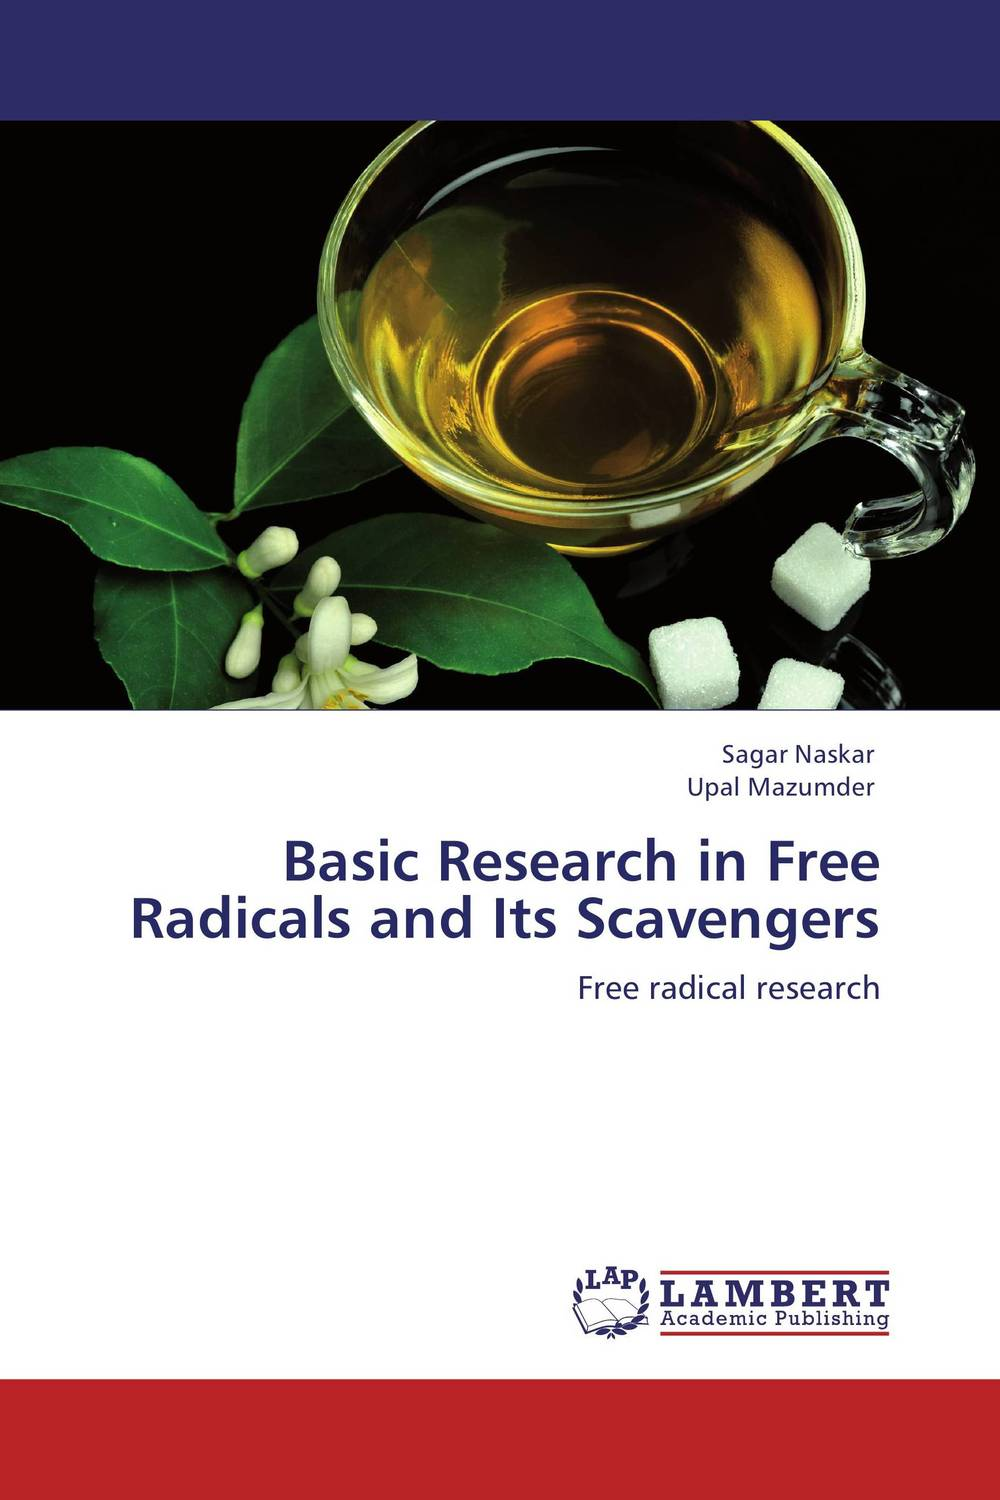 Basic Research in Free Radicals and Its Scavengers radicals